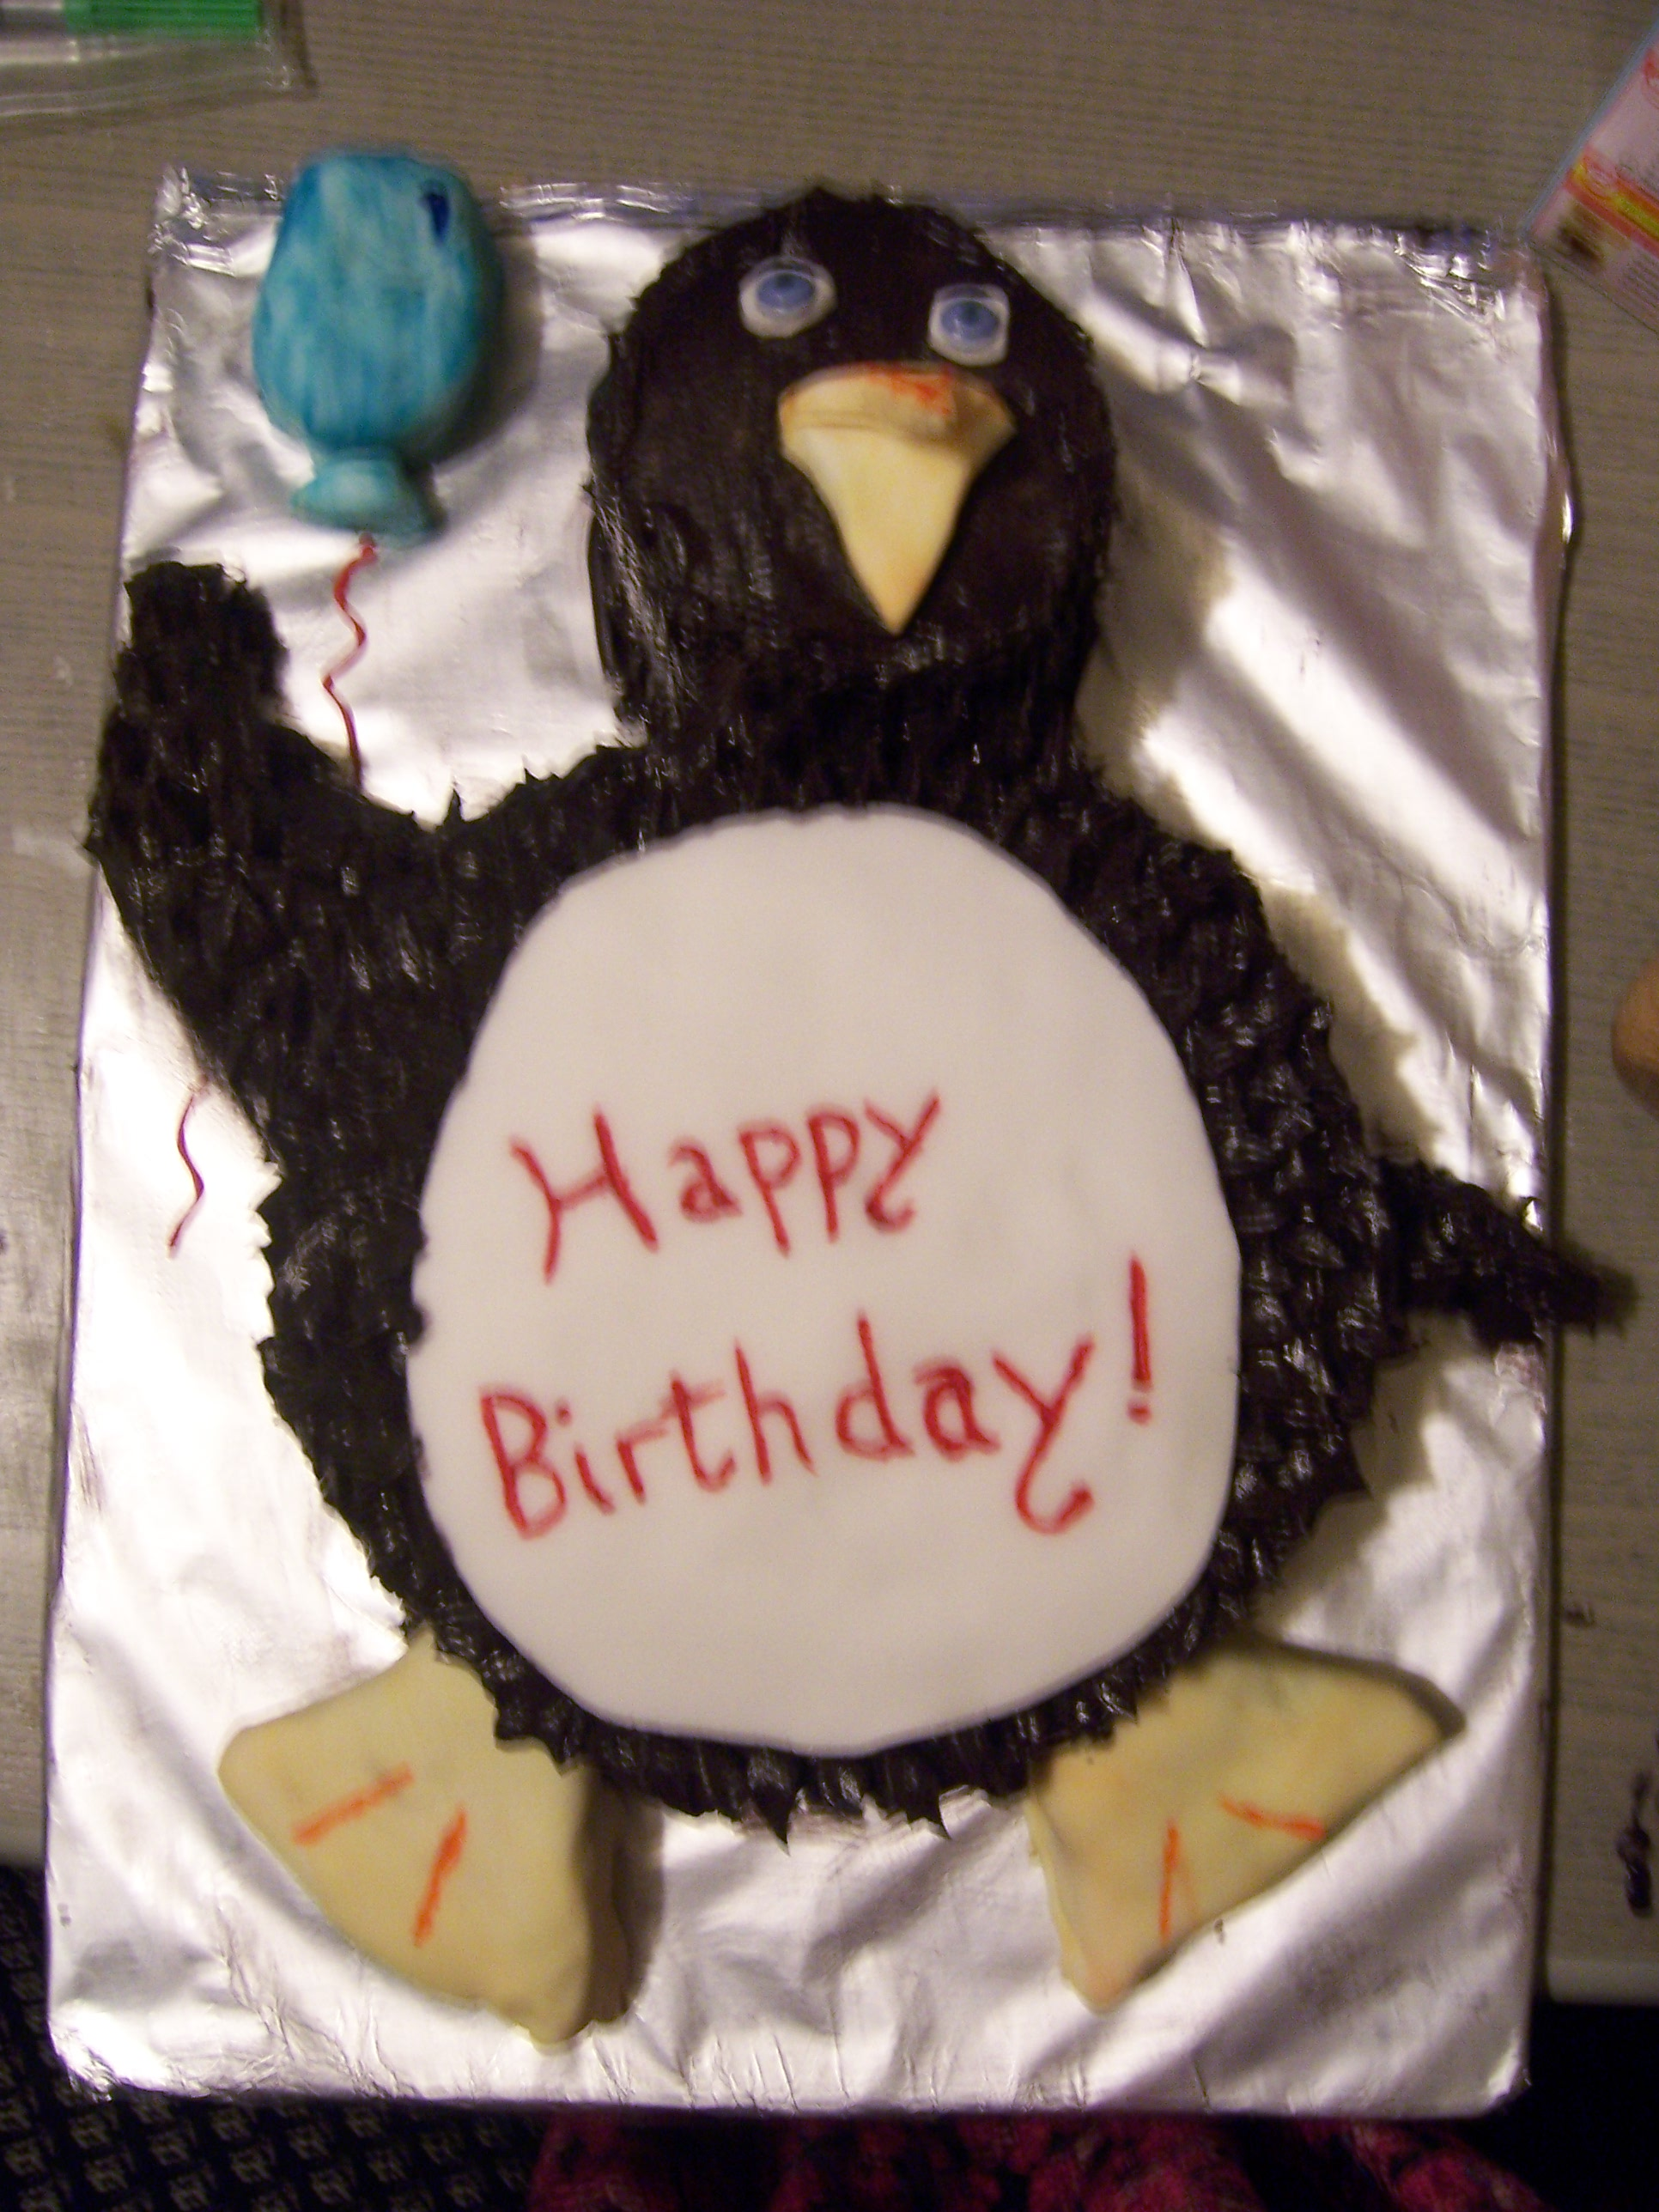 Admirable Penguin Birthday Cake Baking For Penguins Funny Birthday Cards Online Aeocydamsfinfo